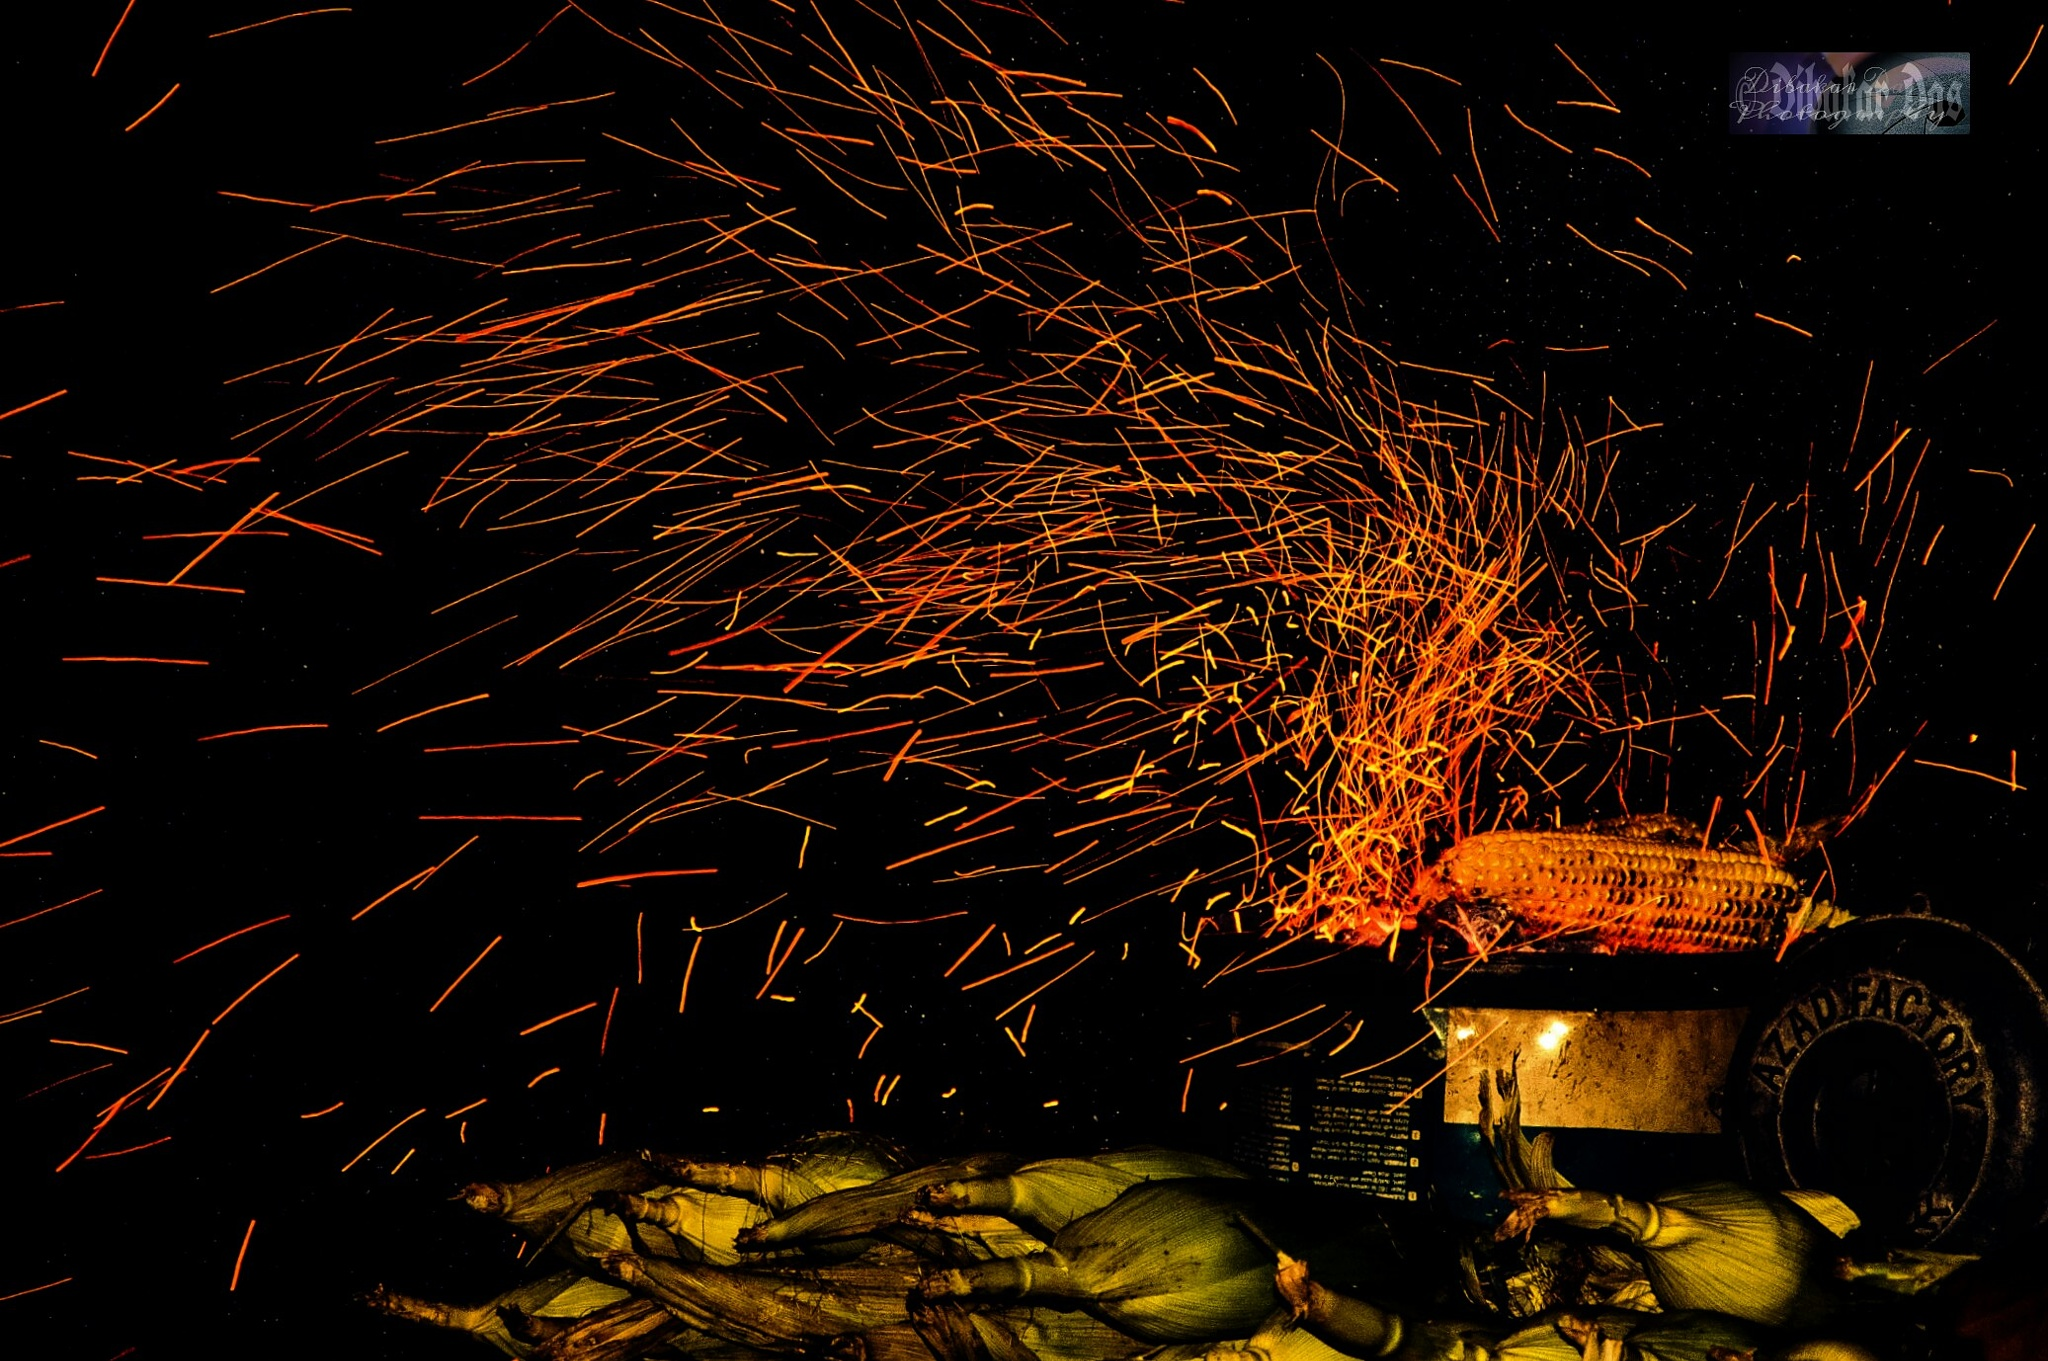 Fireworks Display Of The Way Of This by Dibakar Das